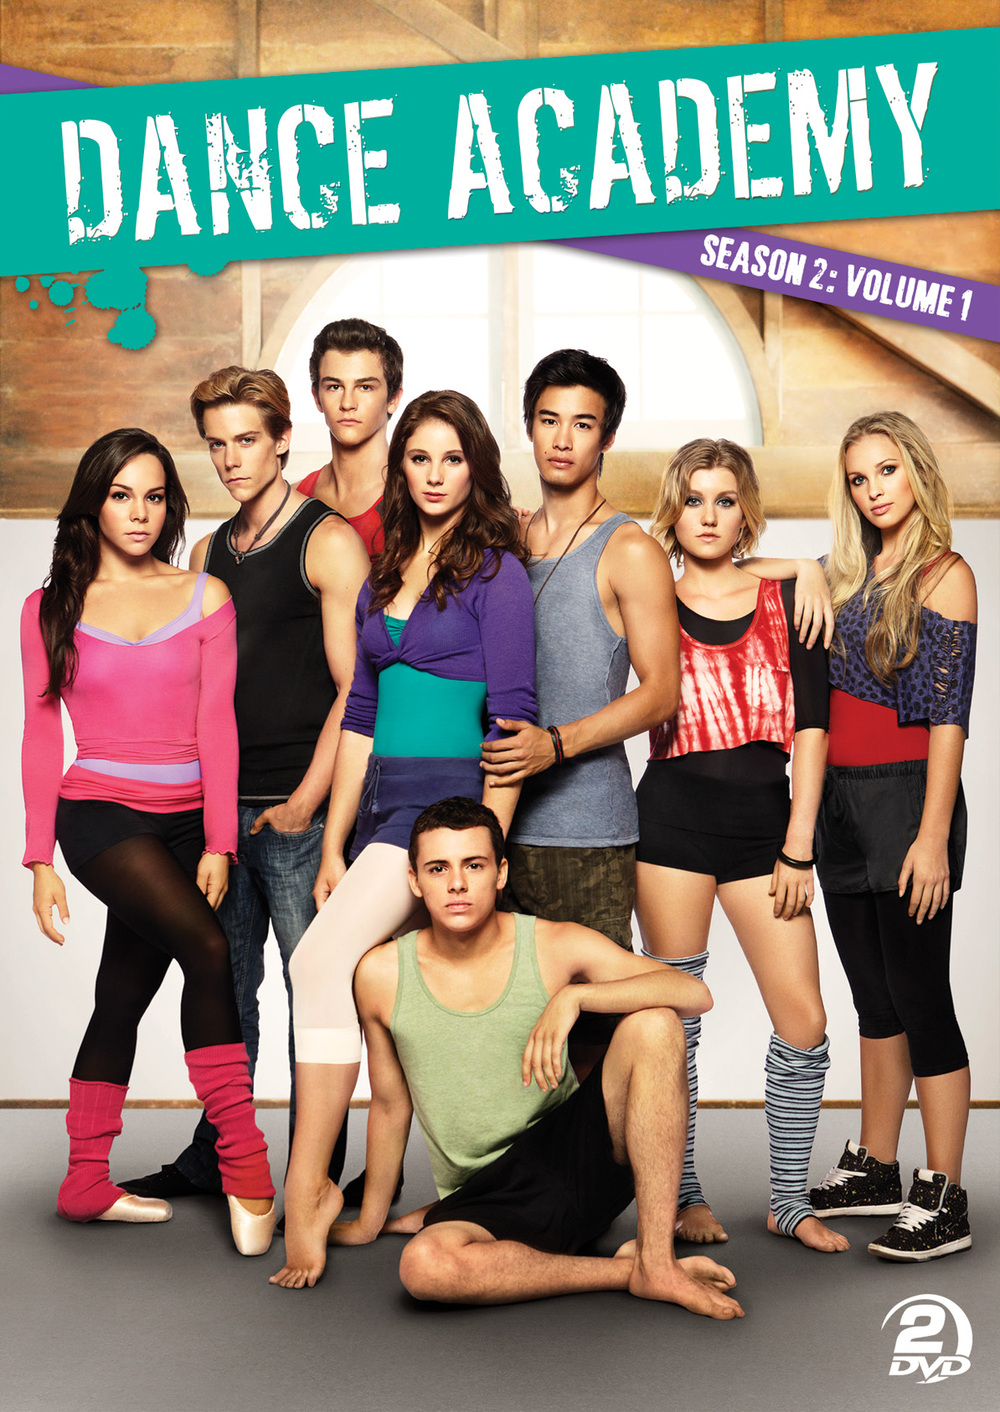 Dance Academy - Stream-It Saturday on Clear Eyes, Full Shelves